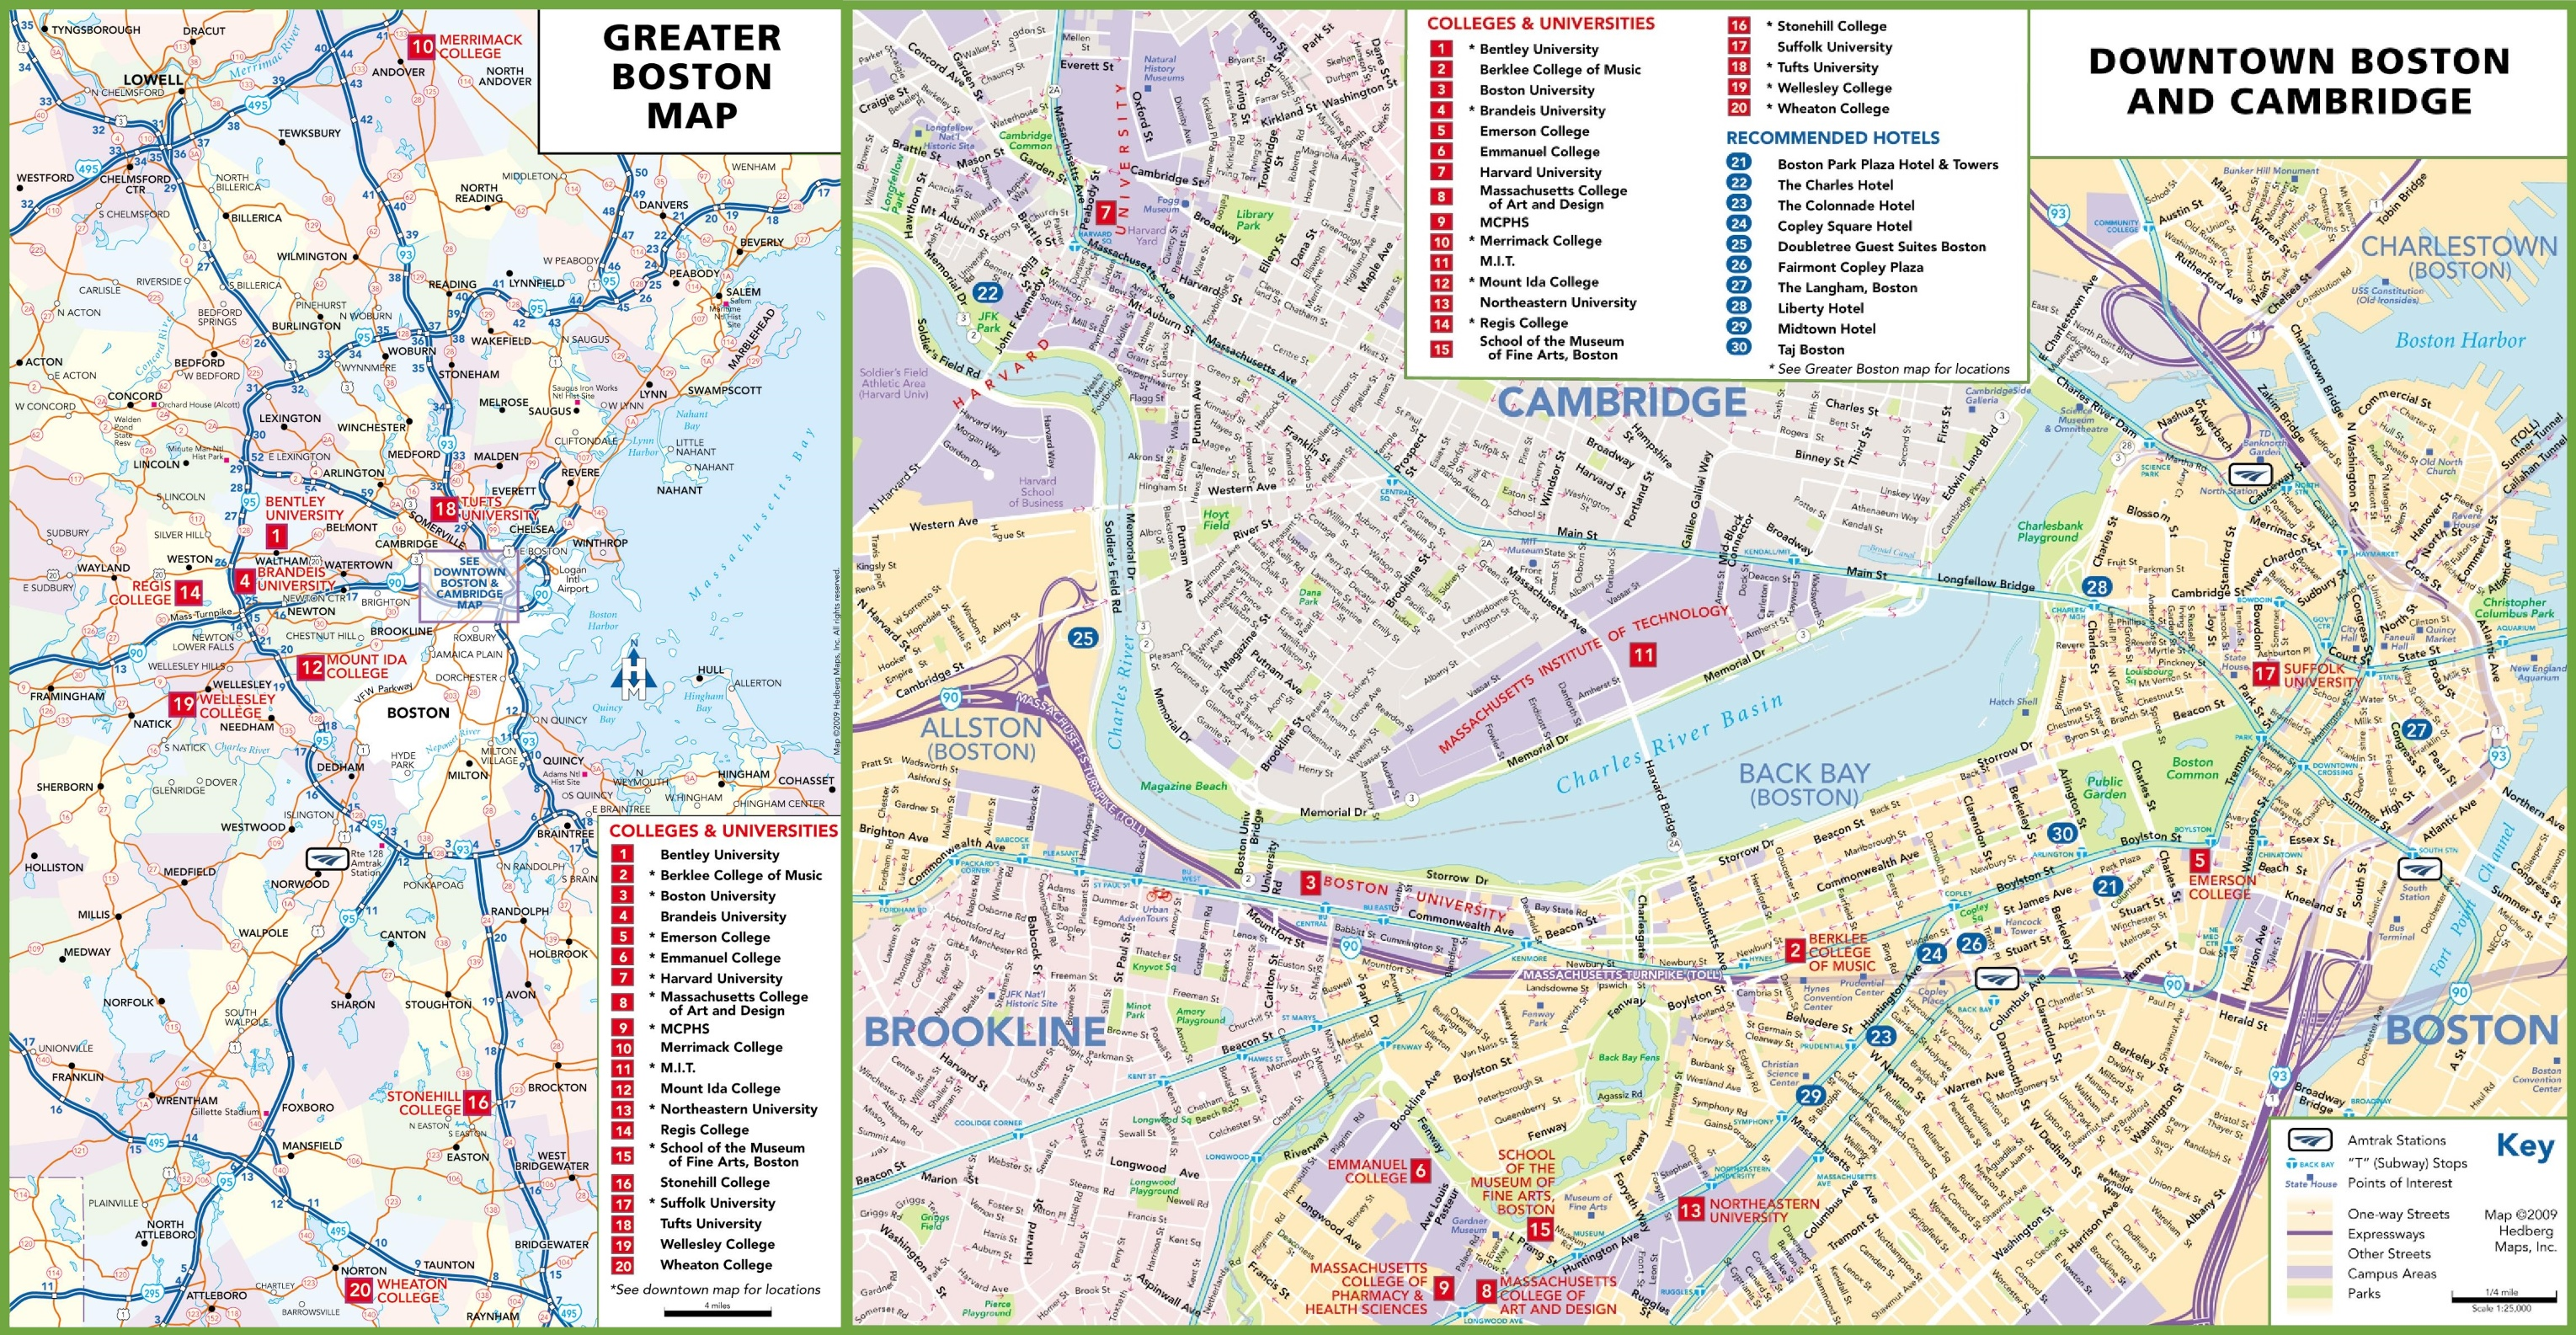 Boston University Map Boston colleges and universities map